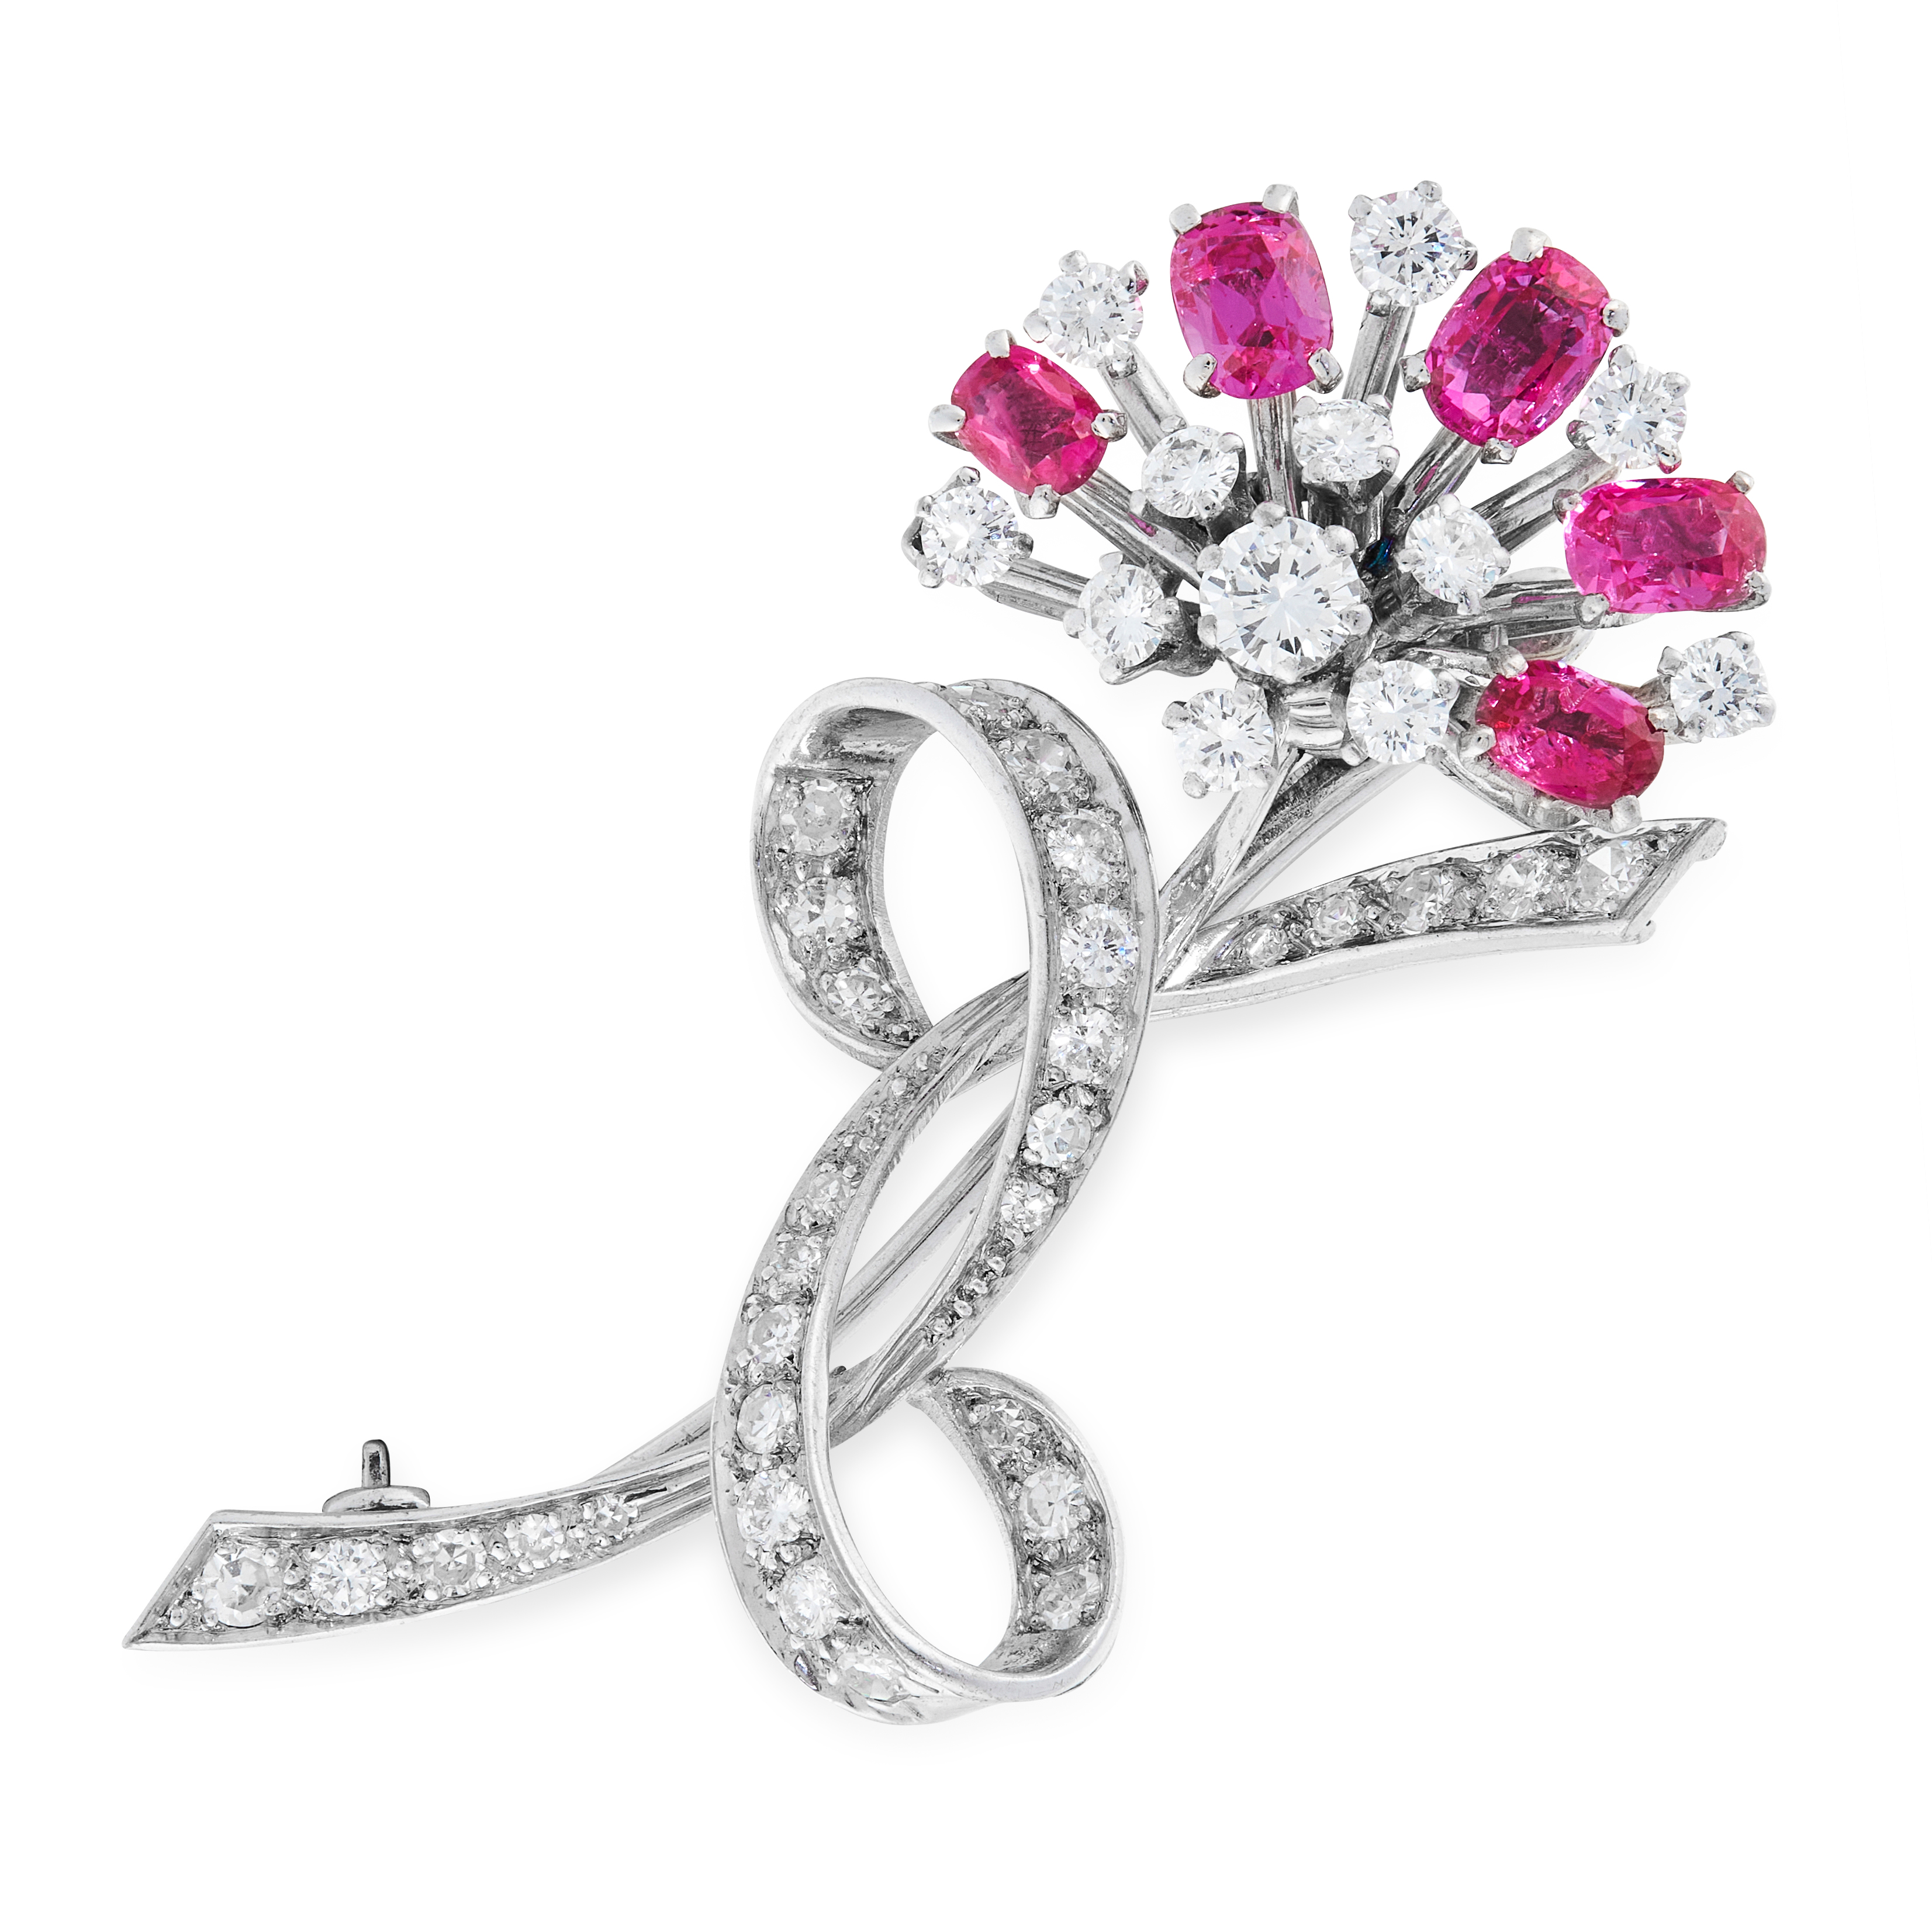 A VINTAGE BURMA NO HEAT RUBY AND DIAMOND BROOCH, H C LTD designed as a floral spray accented by